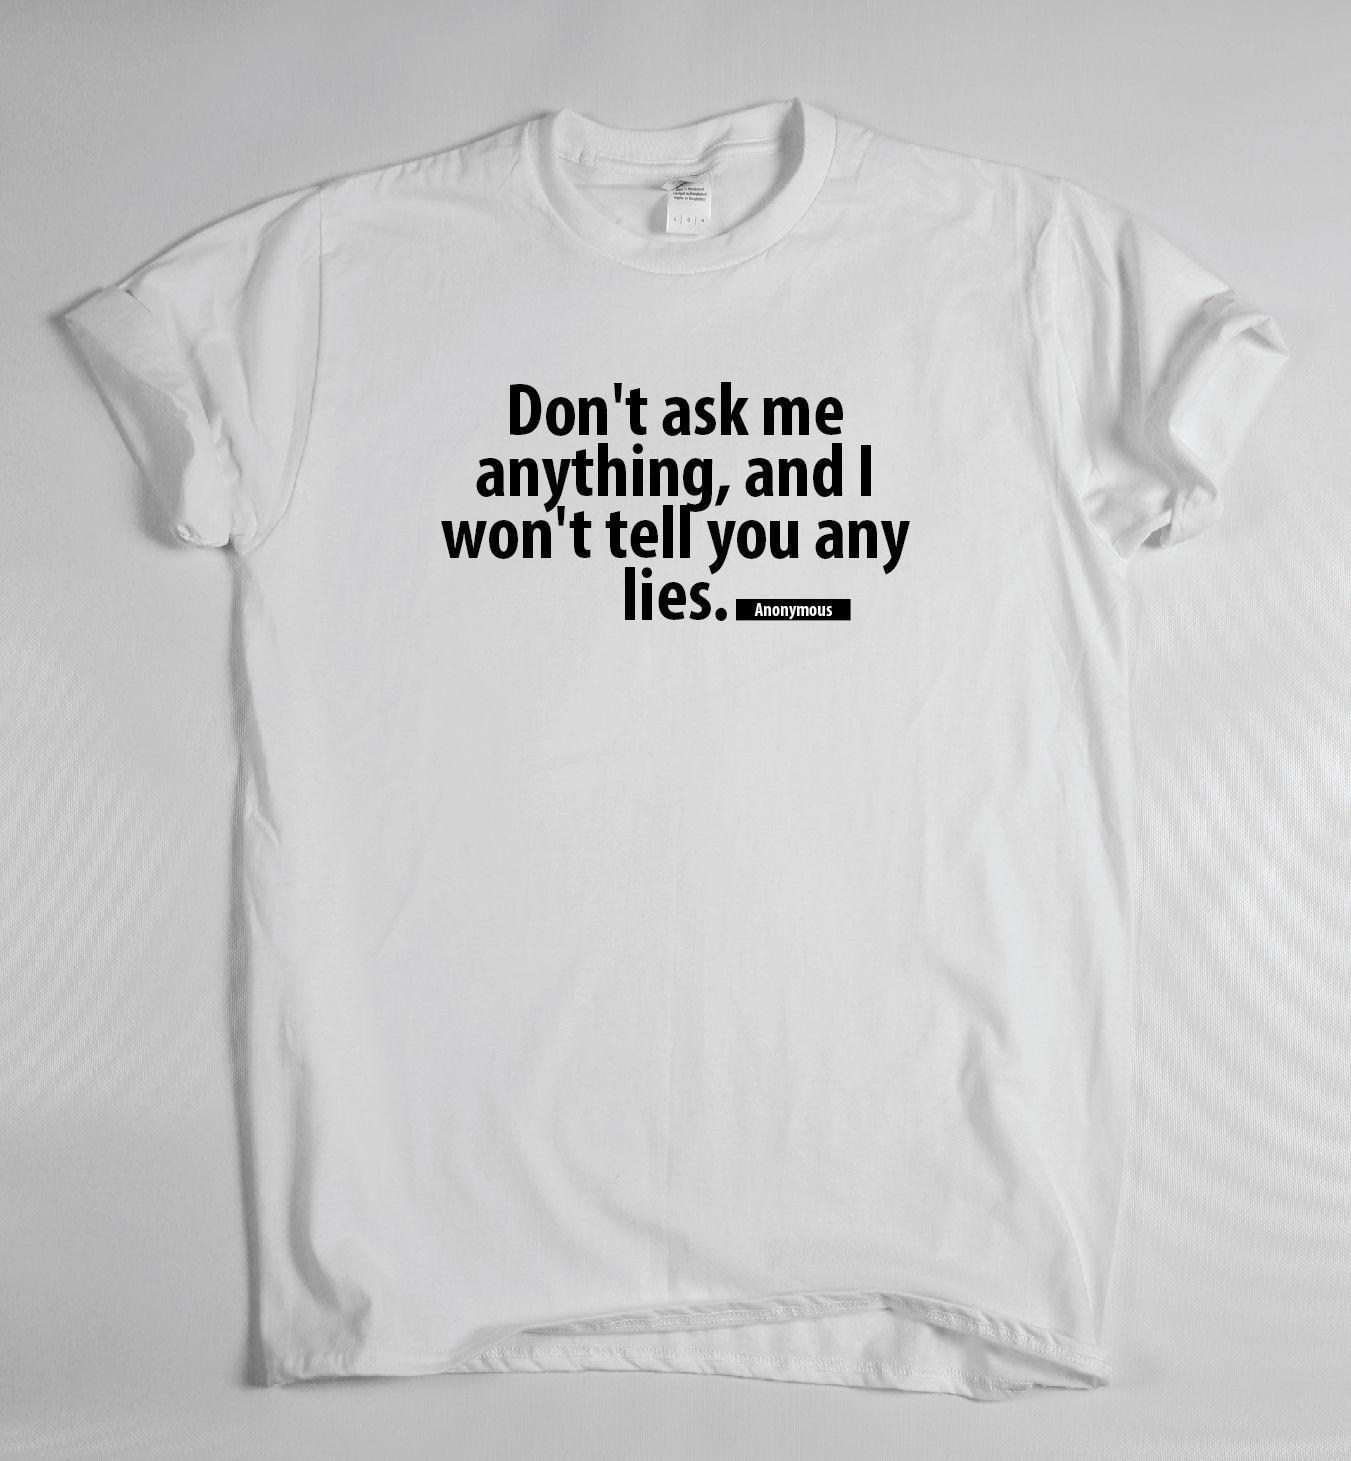 6f3dfe933 Don't Ask Me Anything - funny saying T-shirt mens womens quote sarcasm  ladiesFunny free shipping Unisex Casual Tshirt top